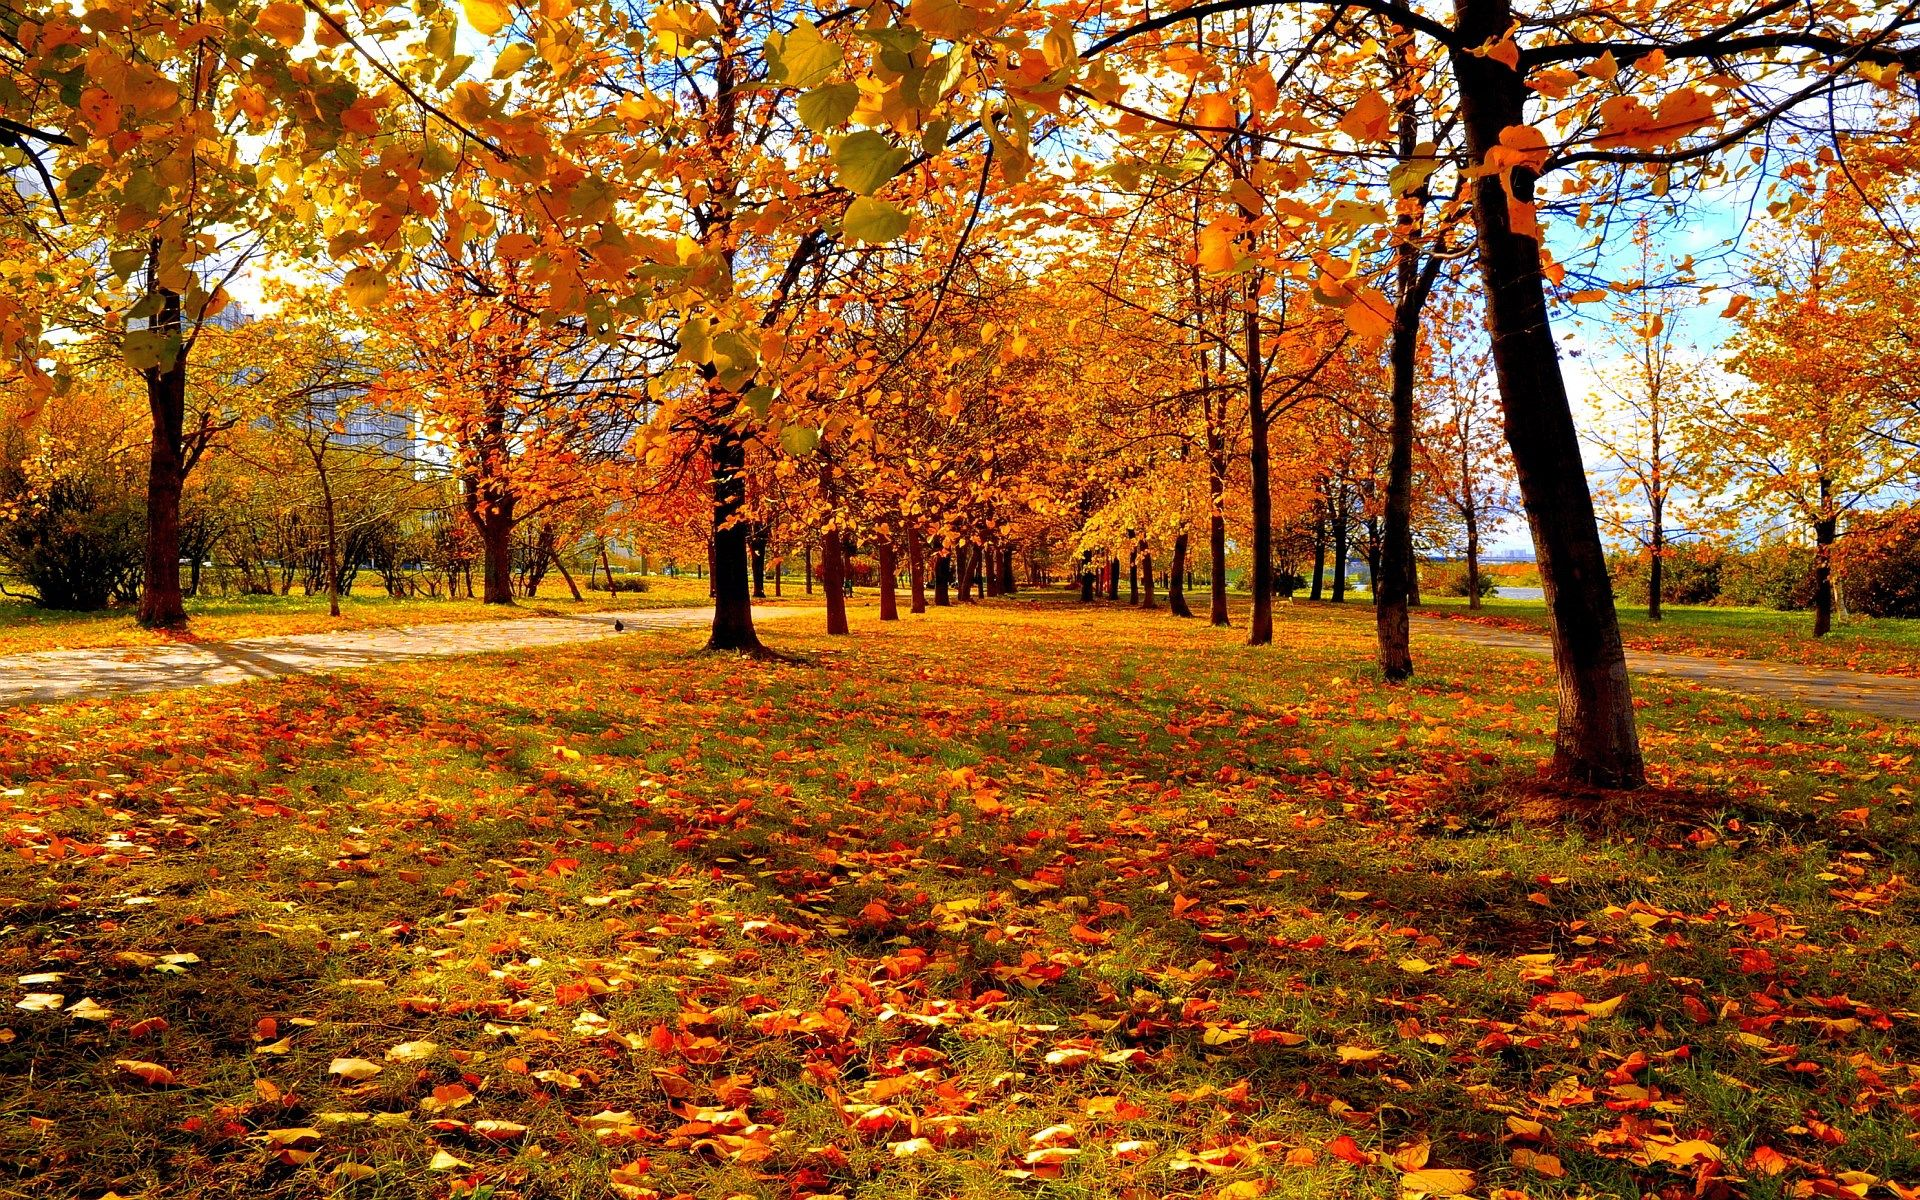 autumn hd wallpapers 1080p high quality Autumn leaves